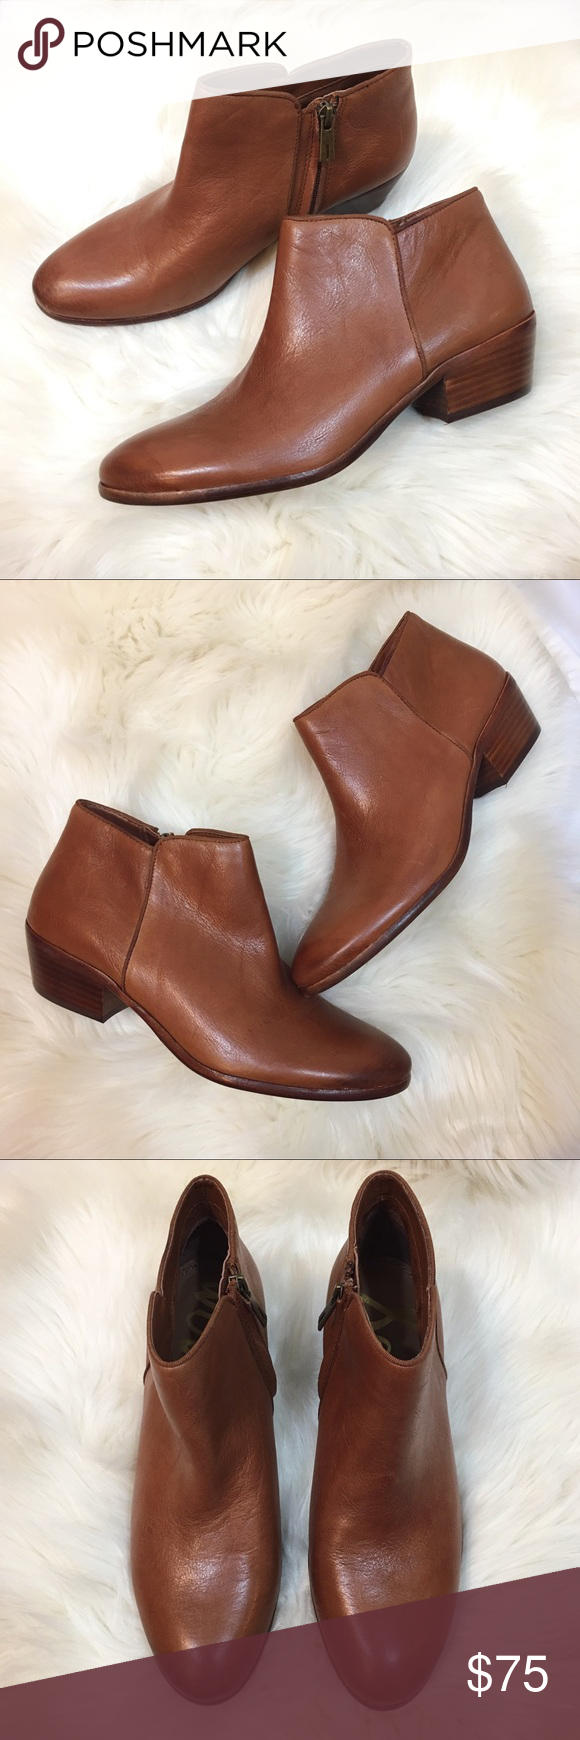 2658f4bcc19155 Sam Edelman petty ankle boots brown saddle leather The perfect booties for  fall! These Sam Edelman petty brown leather boots are in great condition  and were ...